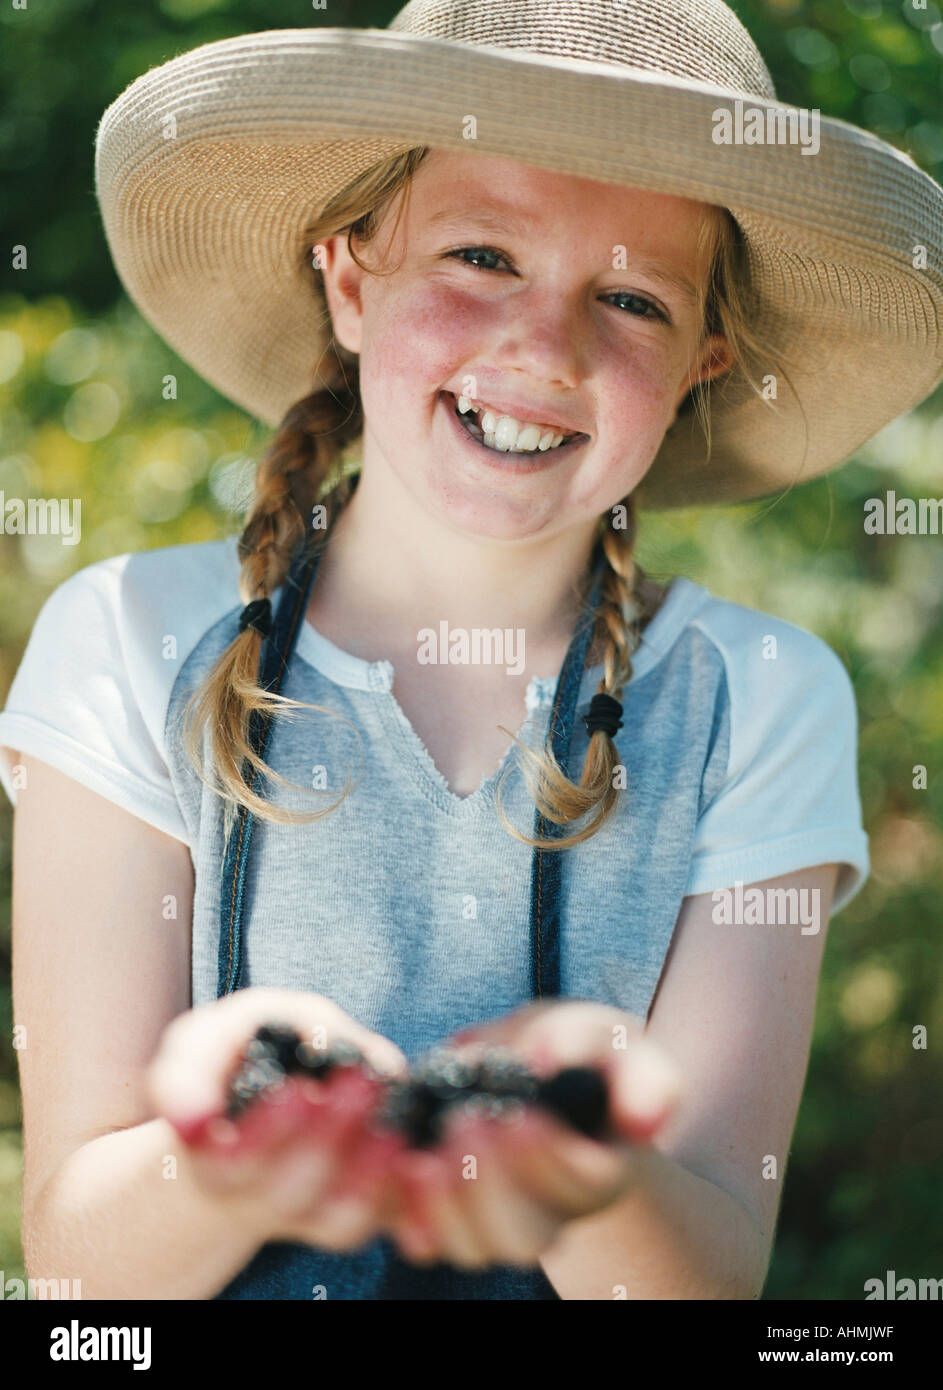 Young girl proudly displays wild blackberries she has picked - Stock Image